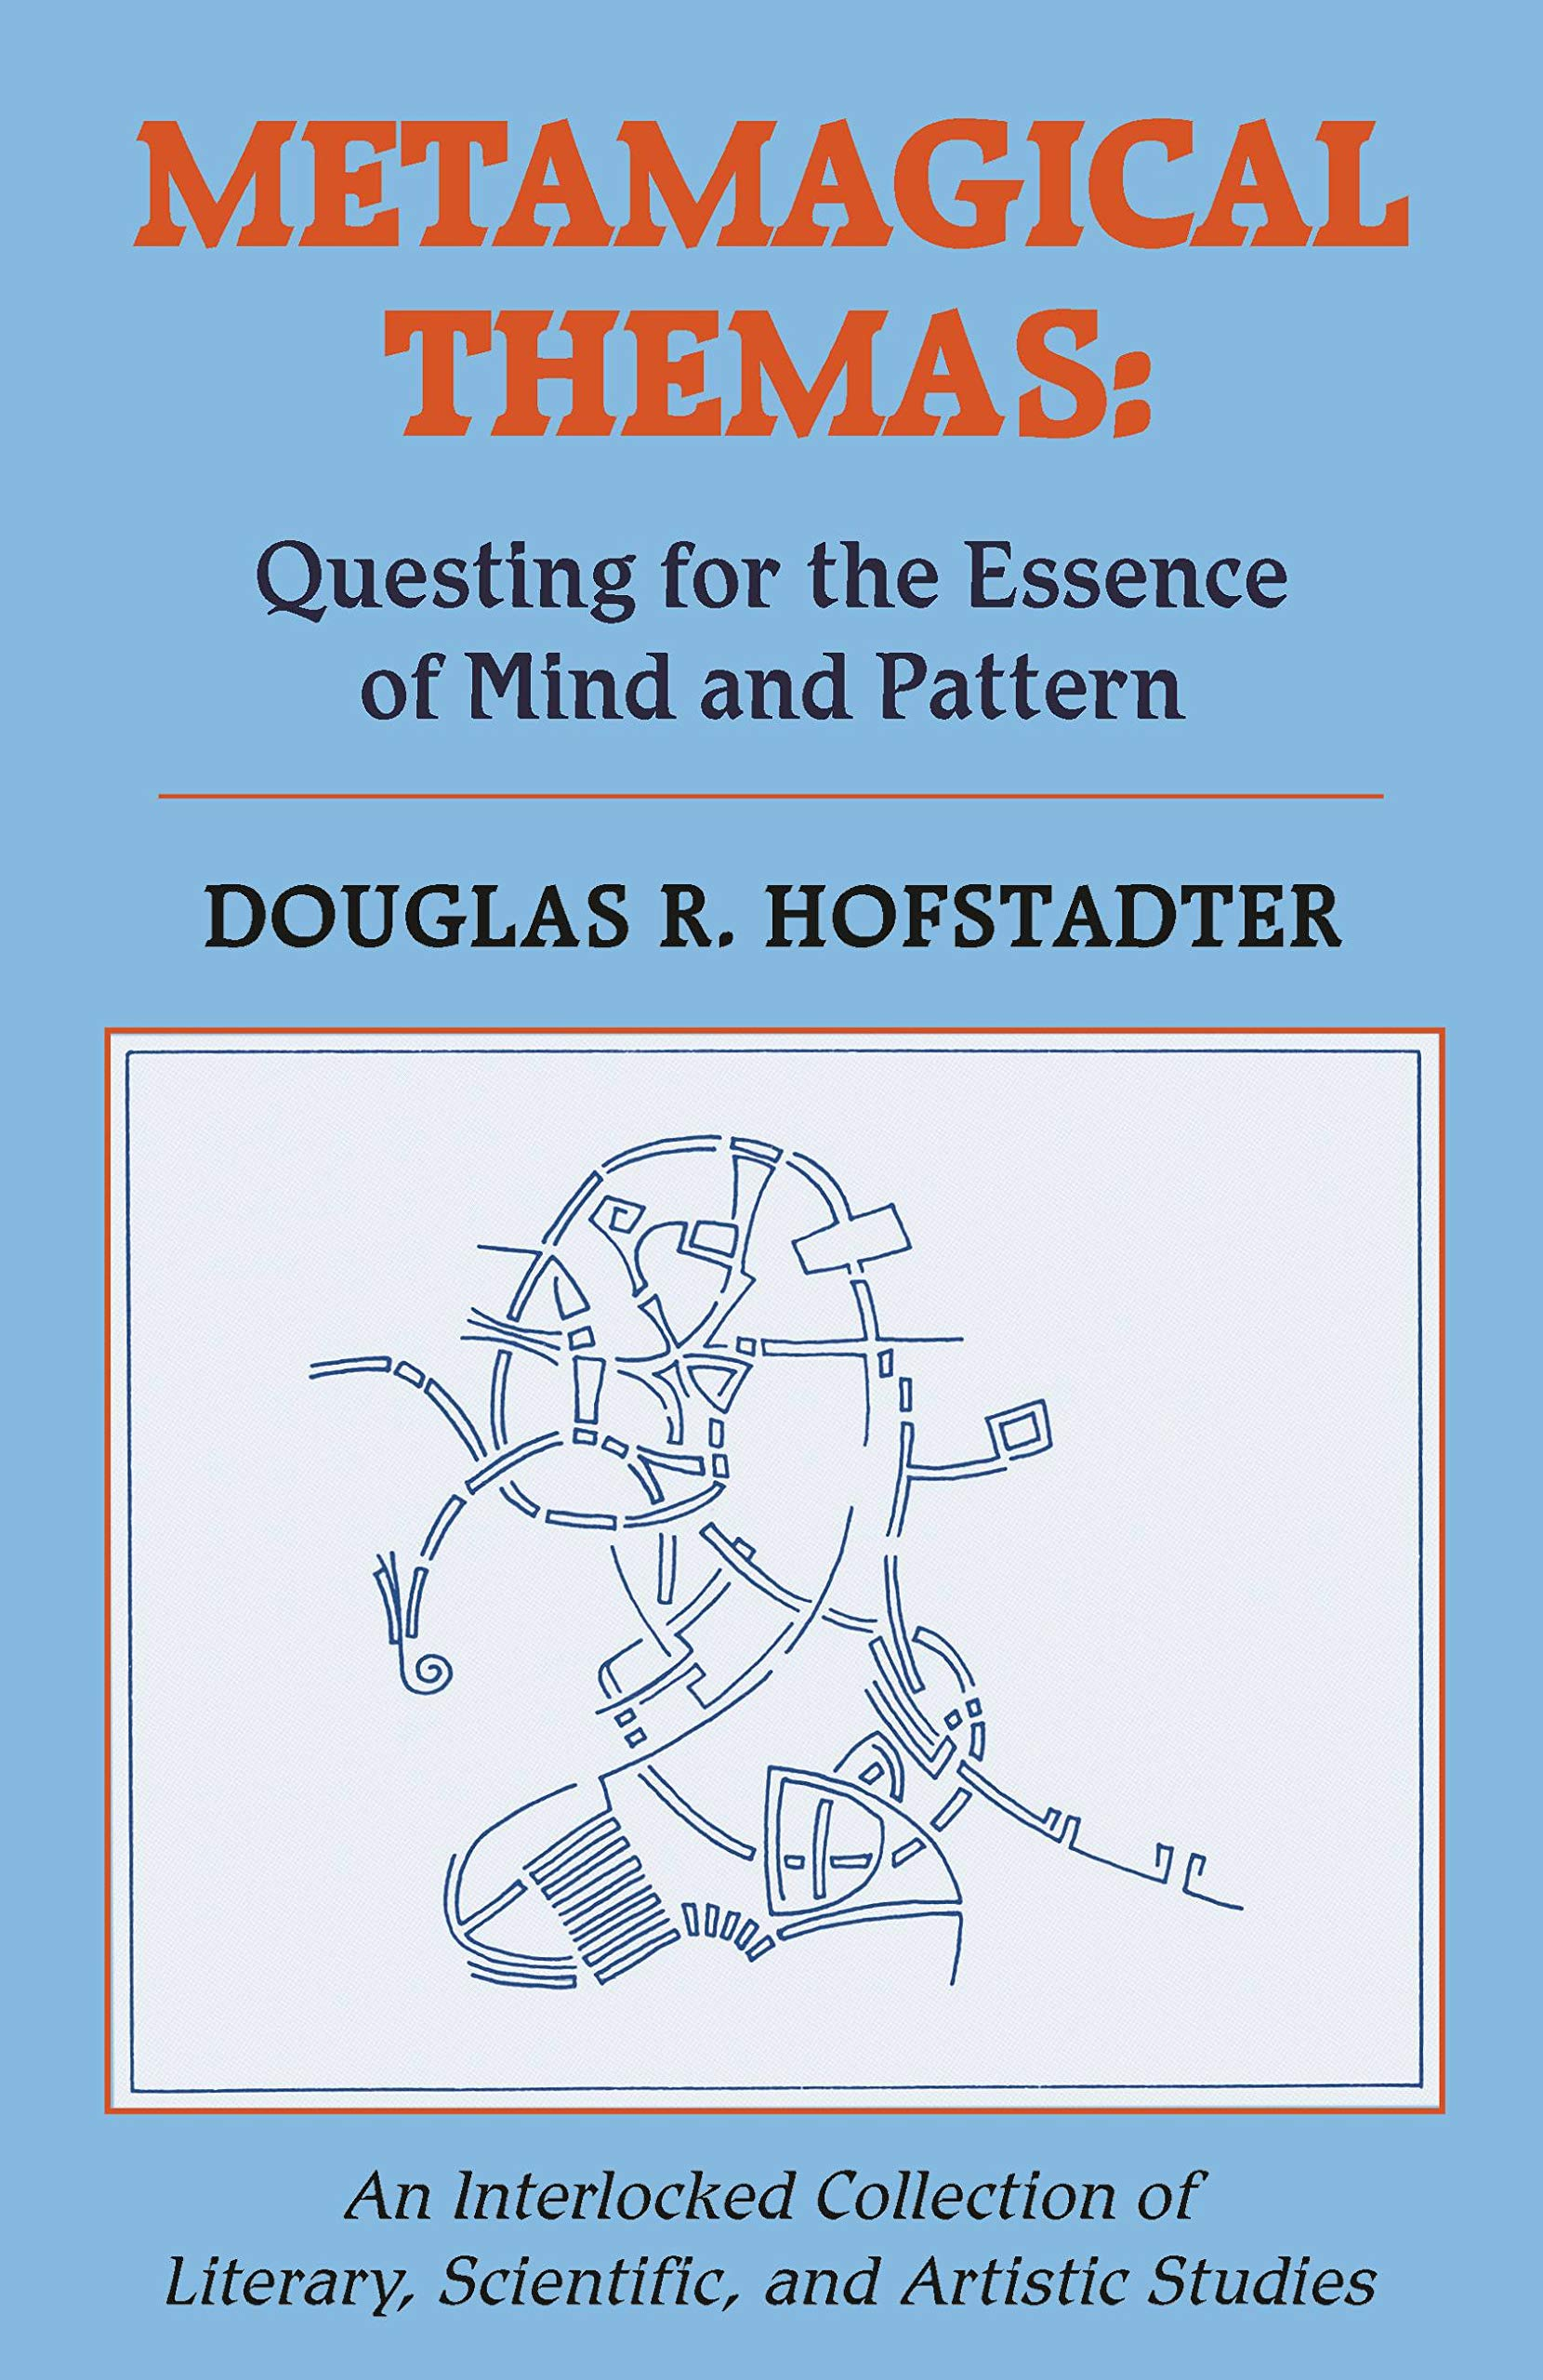 Ebook Metamagical Themas Questing For The Essence Of Mind And Pattern By Douglas R Hofstadter